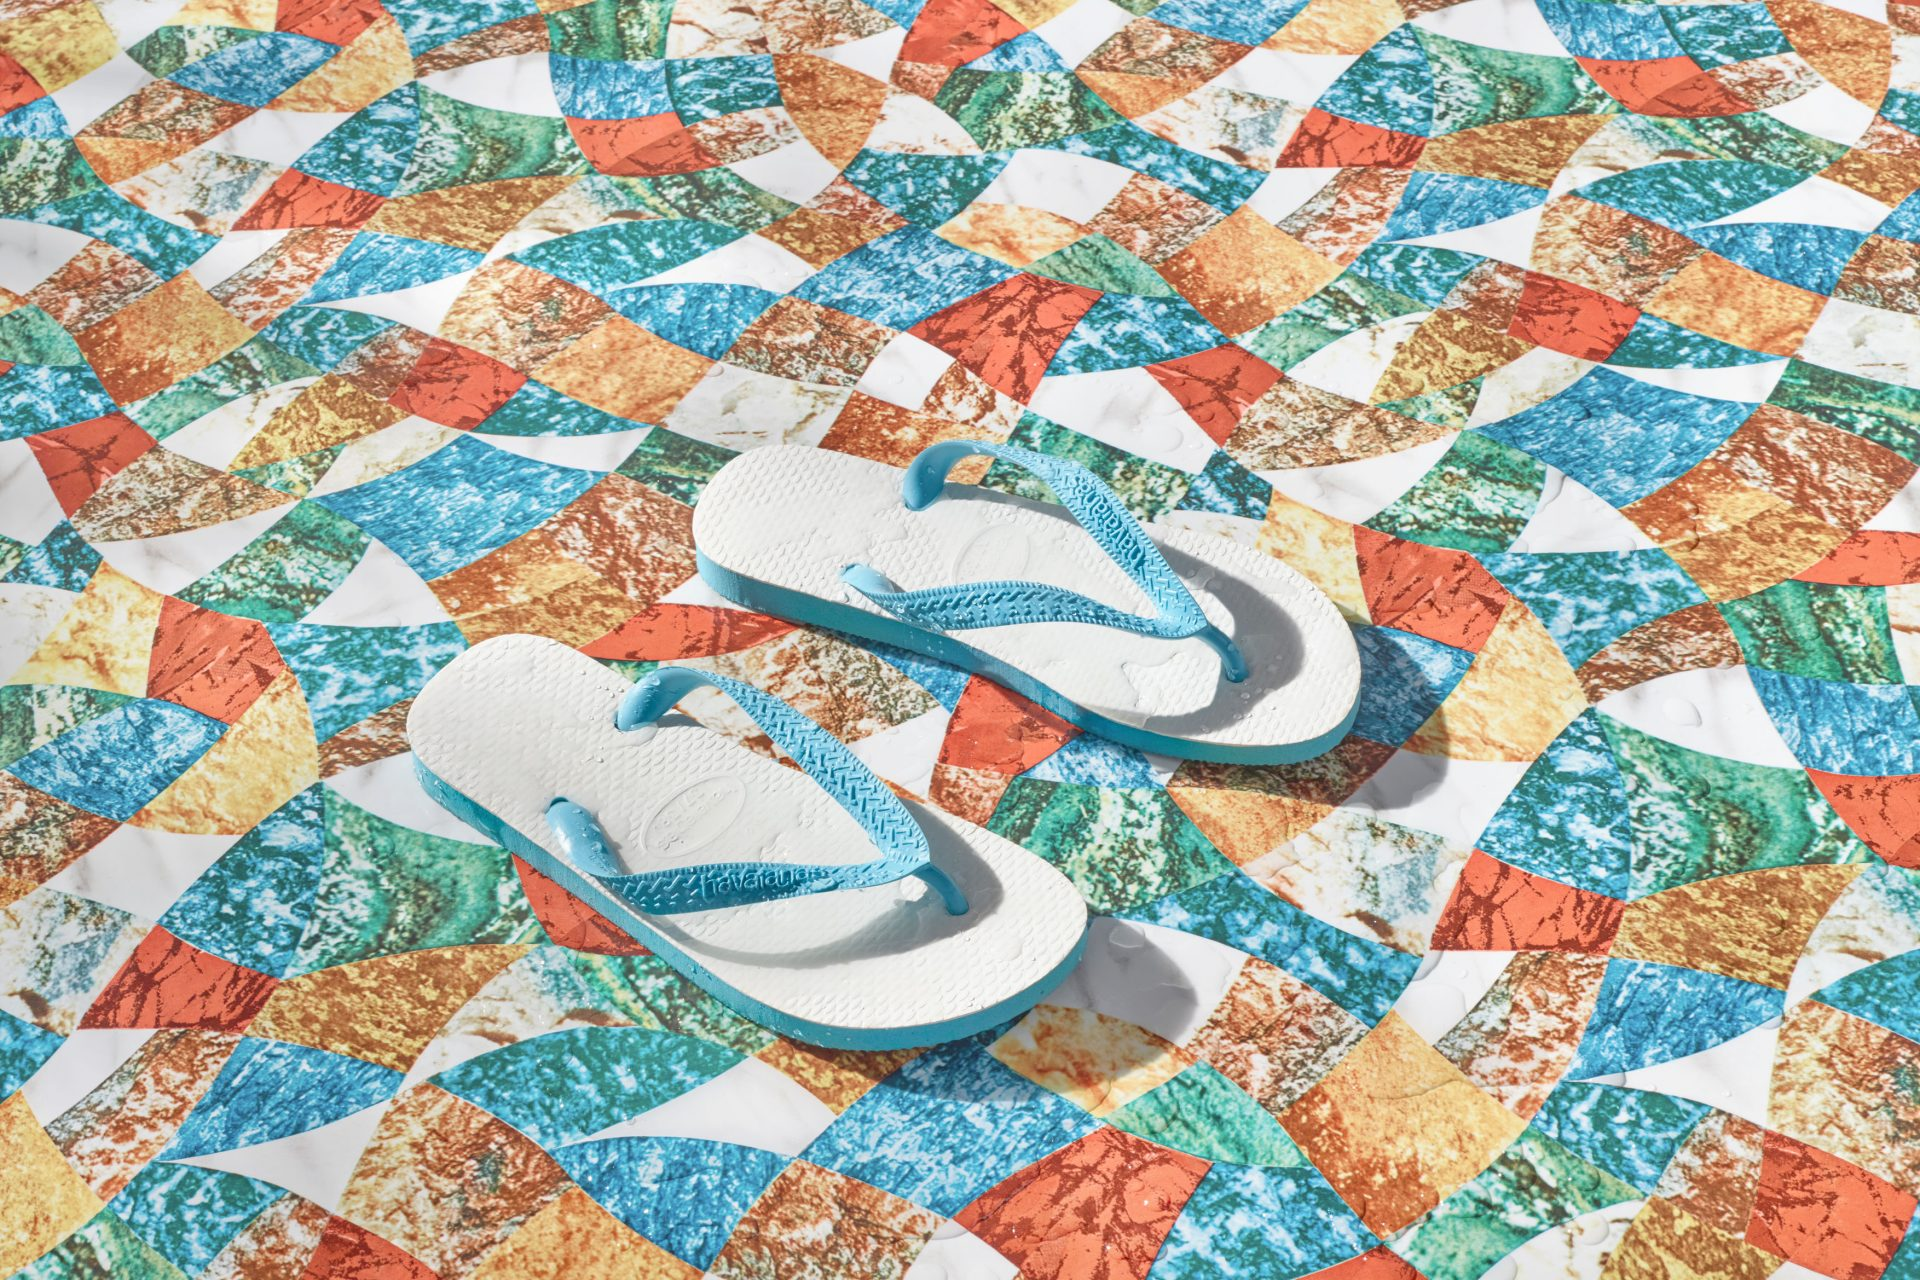 Shaw & Shaw Flip Flops on a patterned floor in the sun – Shaw and Shaw Advertising photographers Manchester photographer – Shaw & Shaw Photography